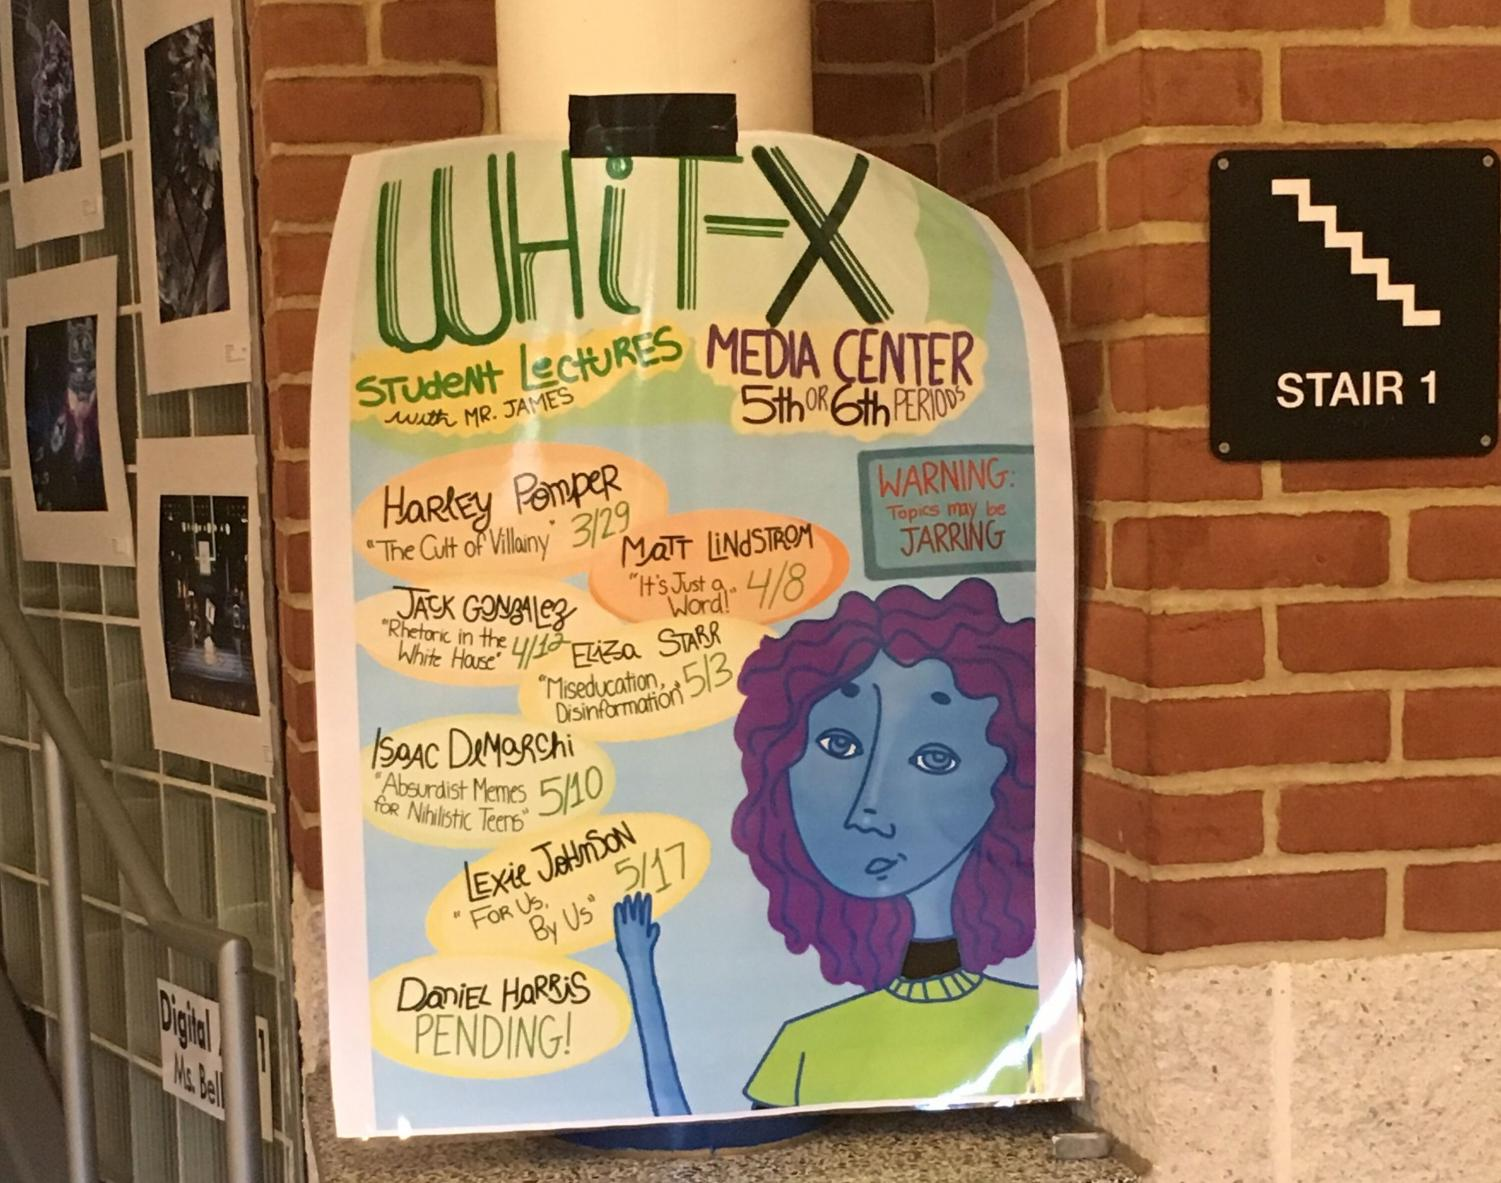 The Whit-X Lecture series gives students a platform to share their opinions. Students research and create a 45 minute presentation on a topic of their choice.